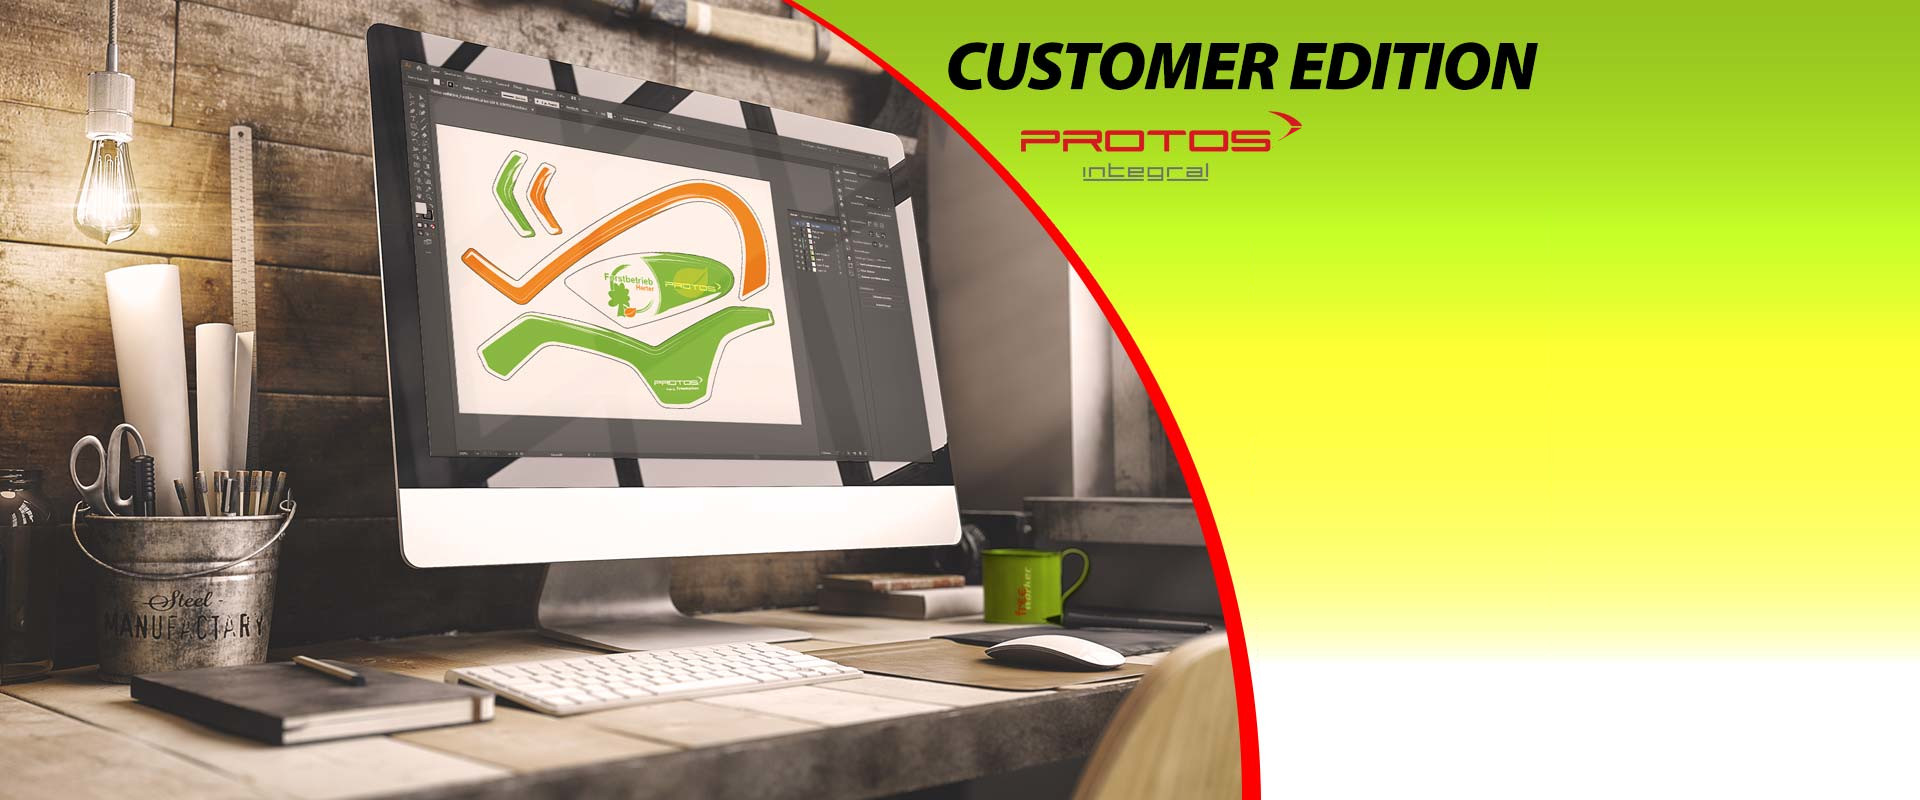 Permalink to: Protos® Integral Customer Edition – do what you want!